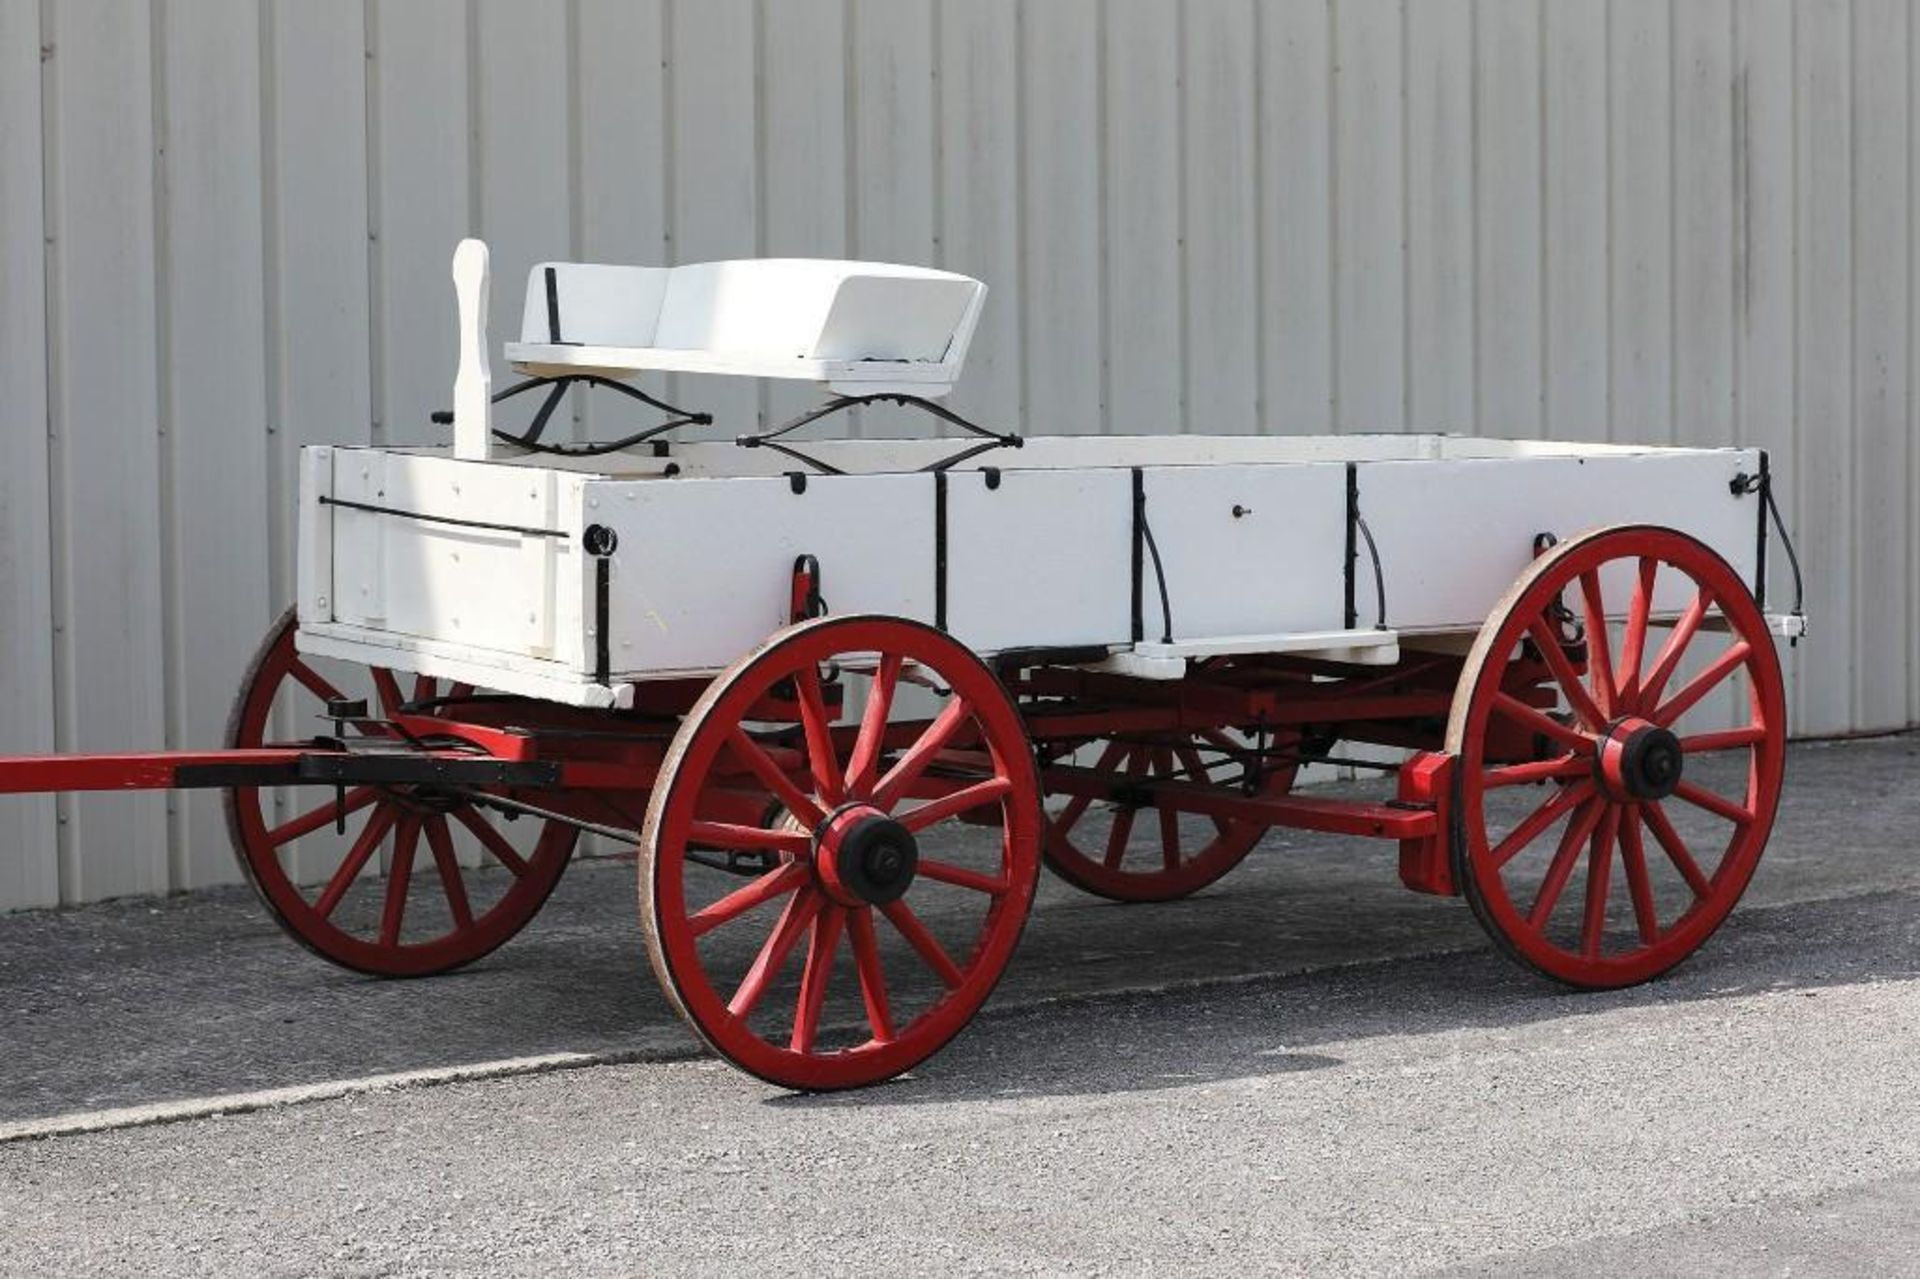 OWENSBORO Box Bed Farm Wagon, Hand Brake, Seat will sell separate - Image 2 of 2